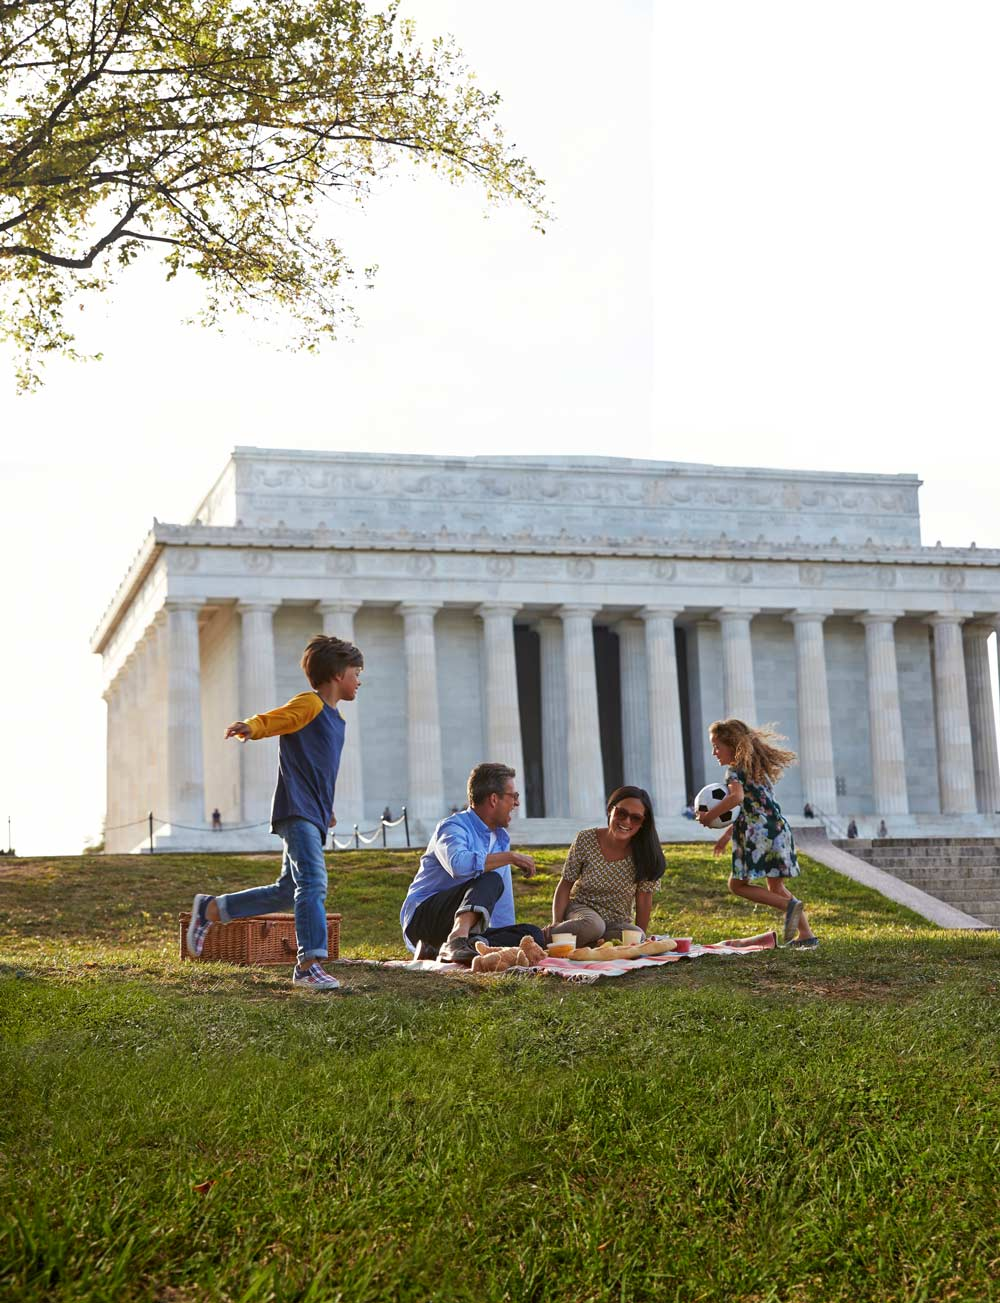 Family-Friendly Washington, DC Vacation Itinerary